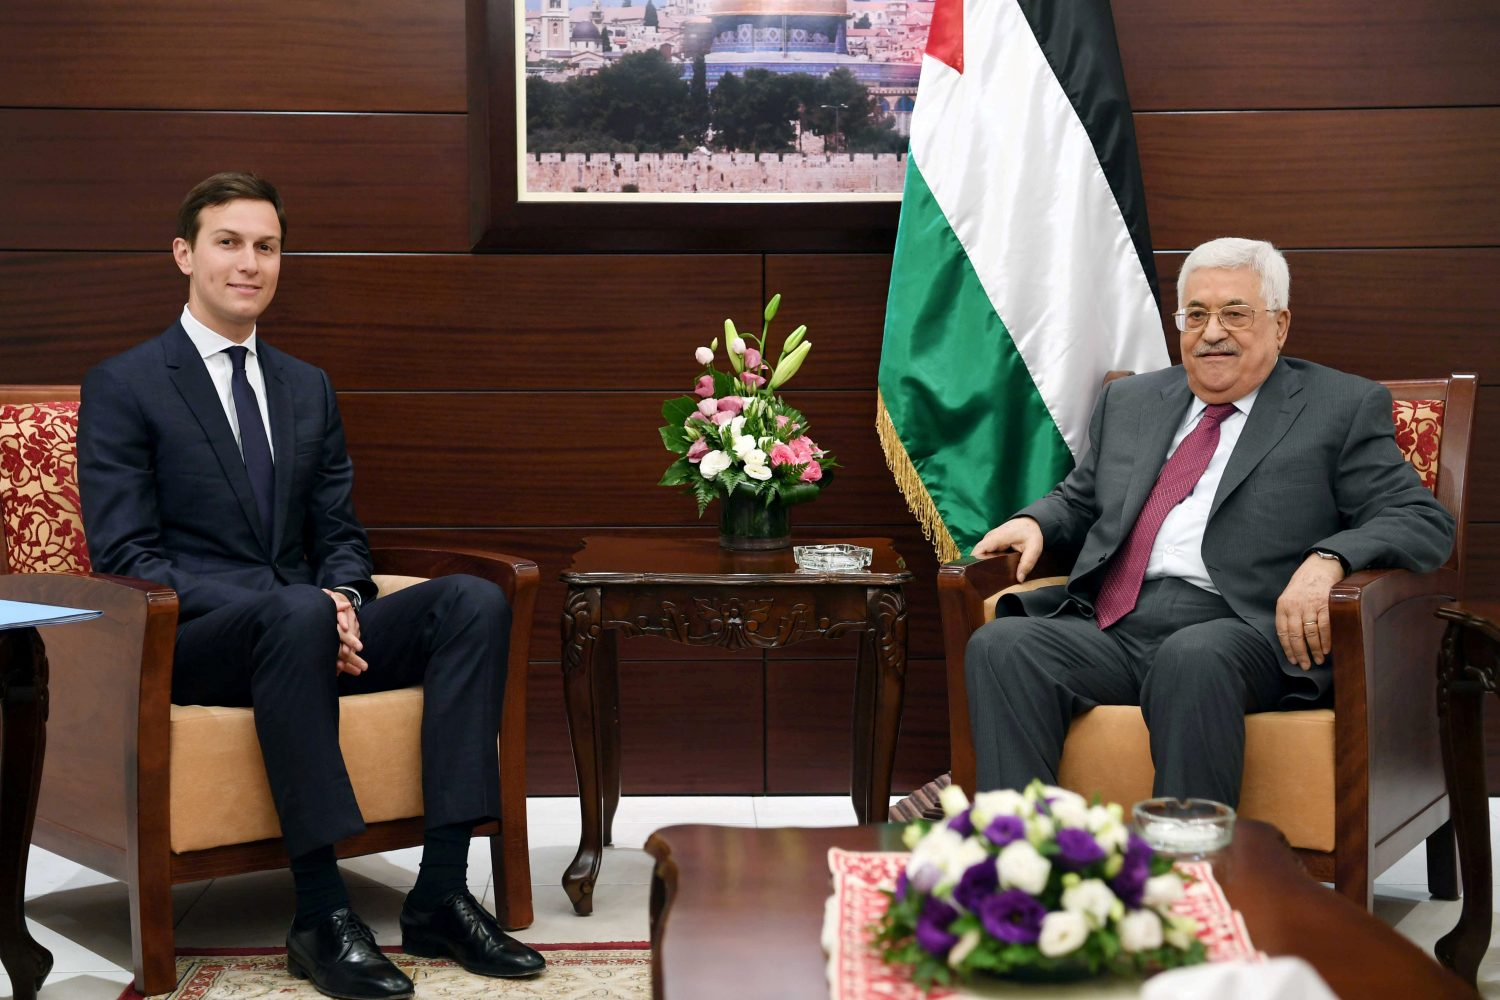 FILE PHOTO: Palestinian President Mahmoud Abbas meets with White House senior advisor Jared Kushner in the West Bank City of Ramallah in the Israeli-occupied West Bank June 21, 2017. Thaer Ghanaim/PPO/Handout via REUTERS/File Photo